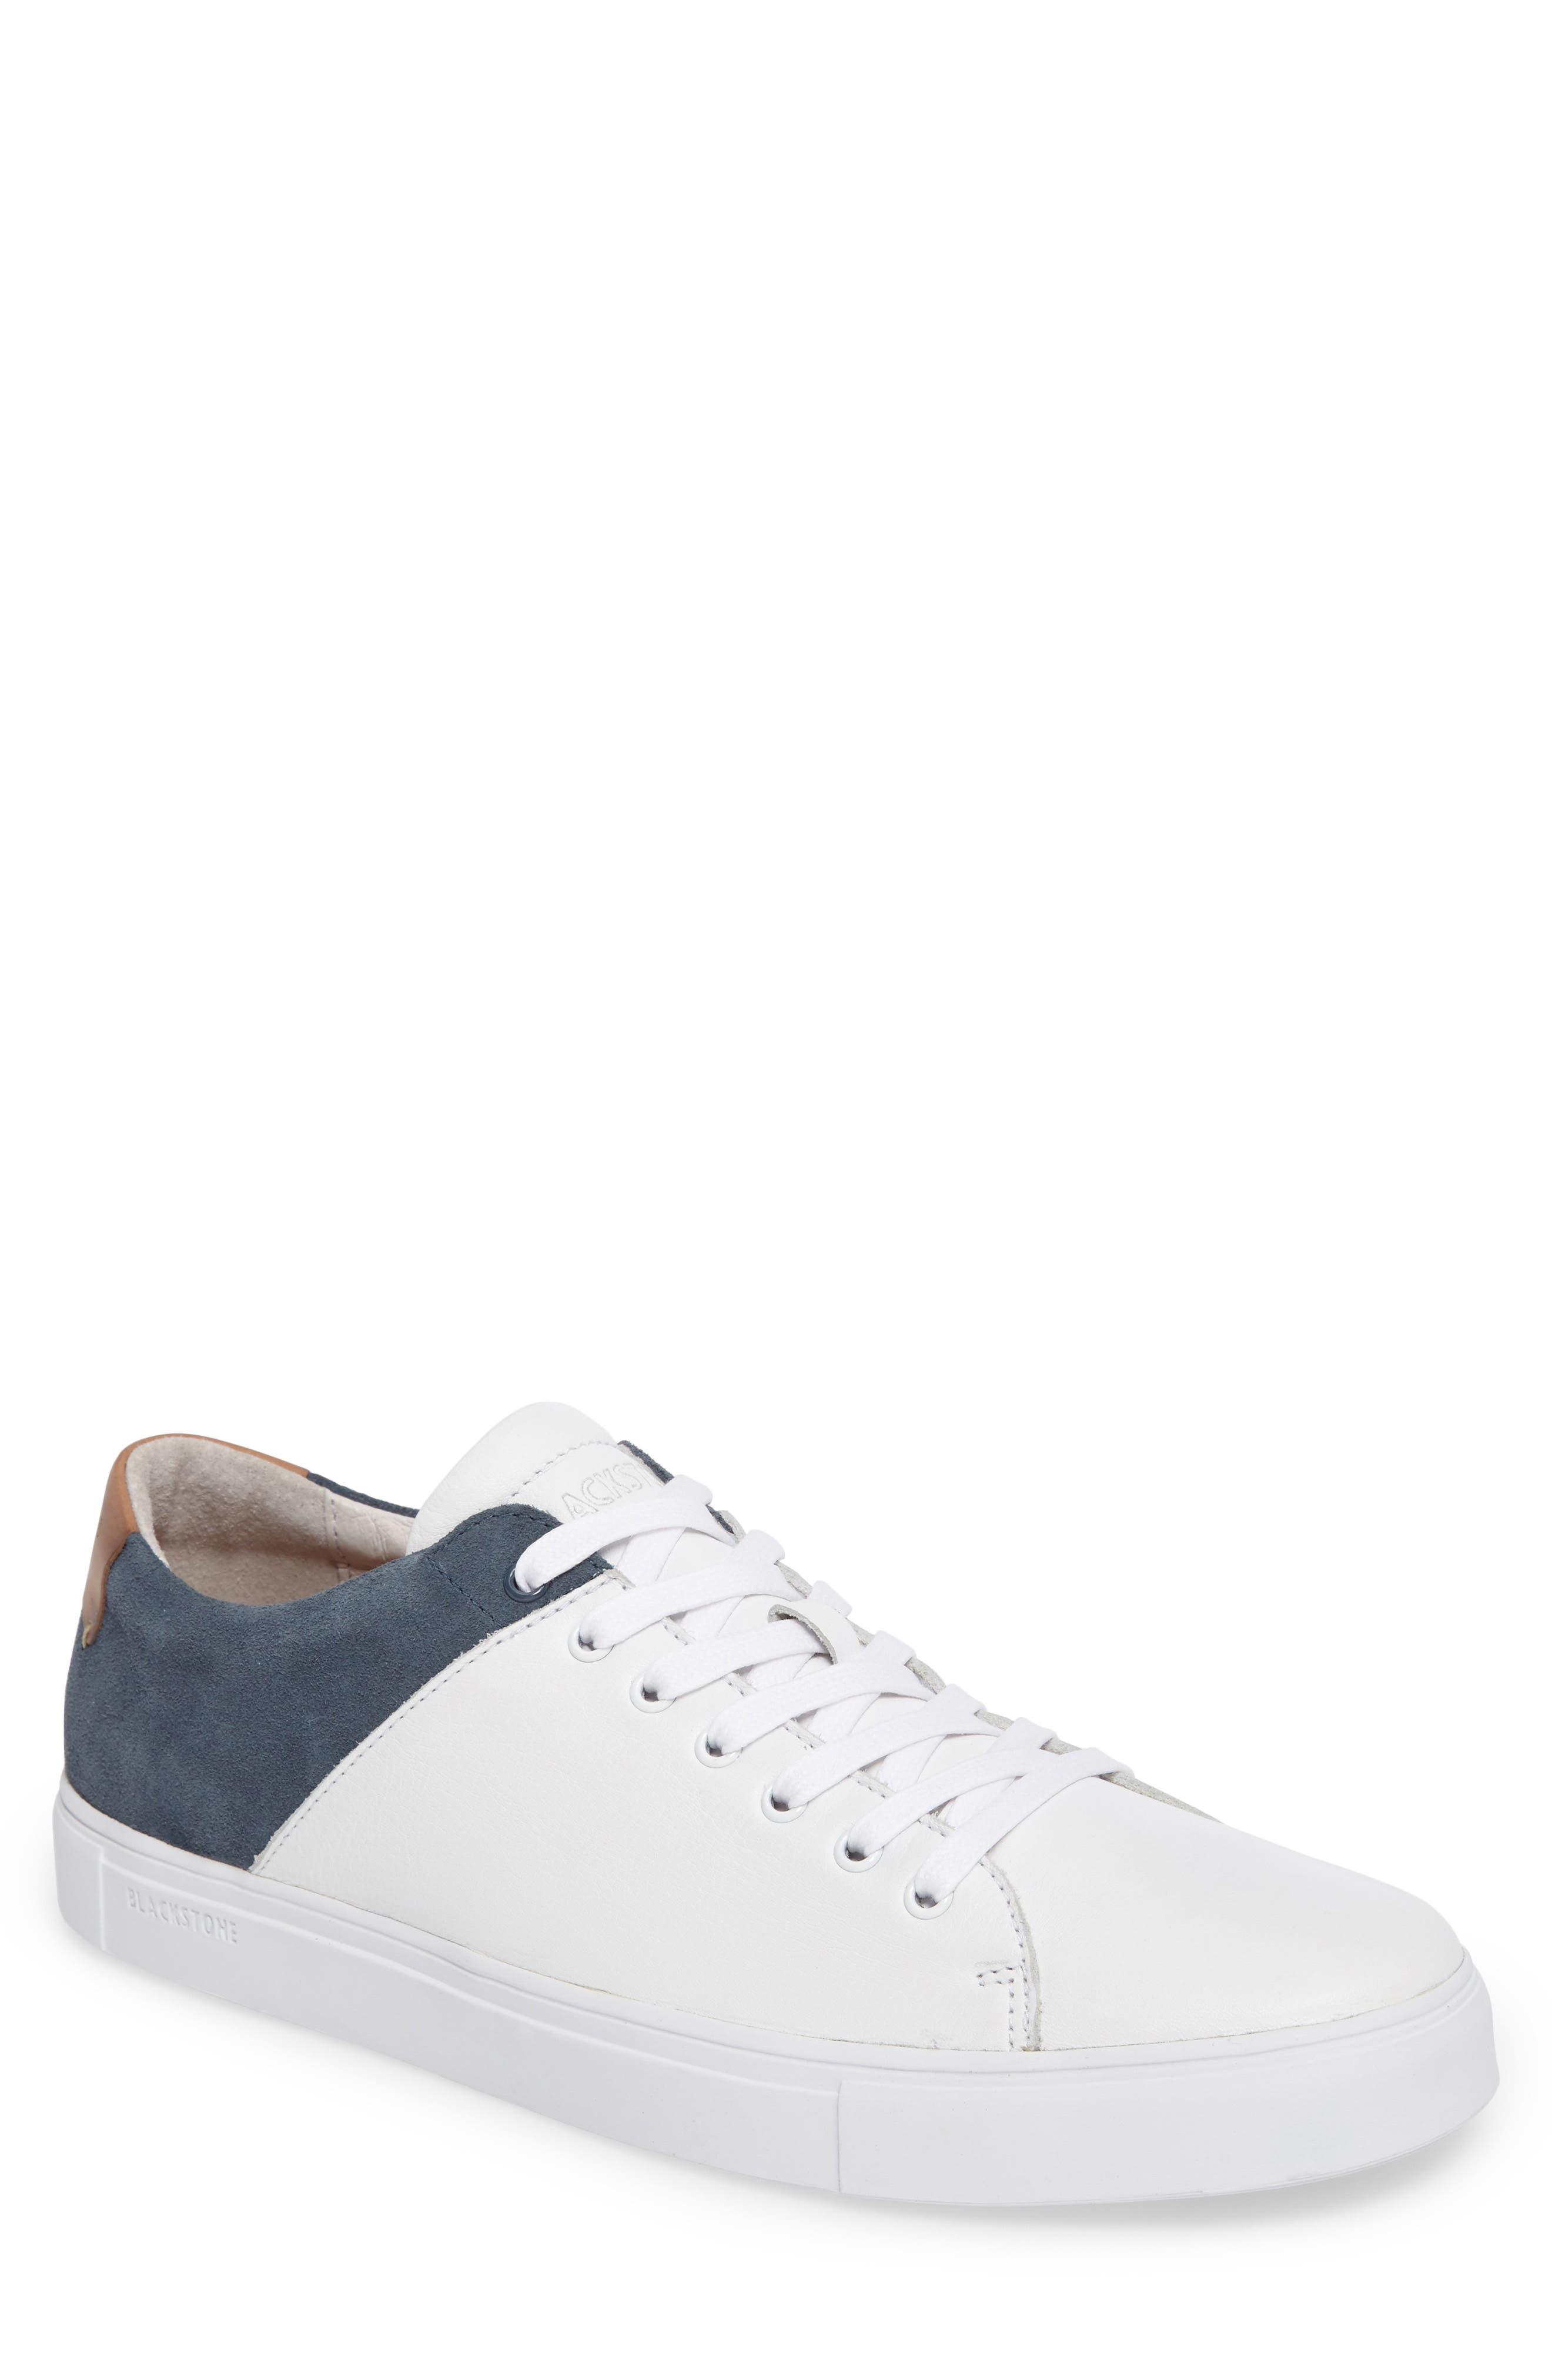 BLACKSTONE NM03 Two-Tone Sneaker